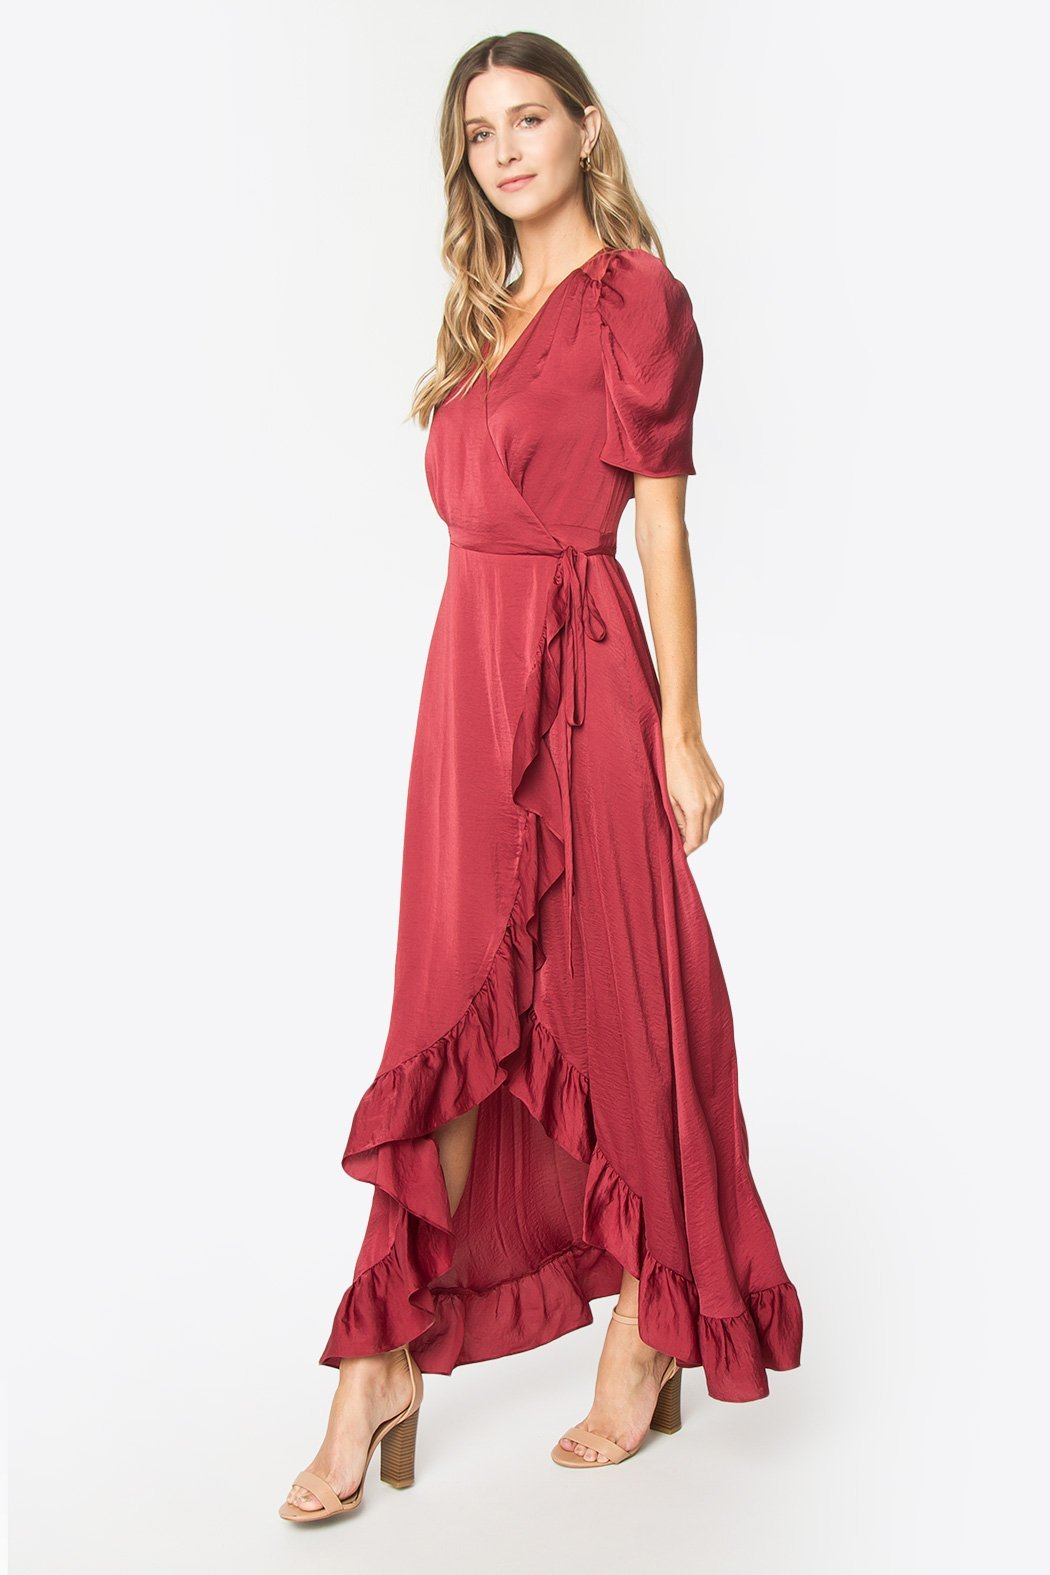 Front view of model wearing a dark coral, light-weight, silky dress which features t-shirt length puff sleeves, a wrap tie closure, v-neckline, and a decorative ruffle along the whole hi-low hem line.